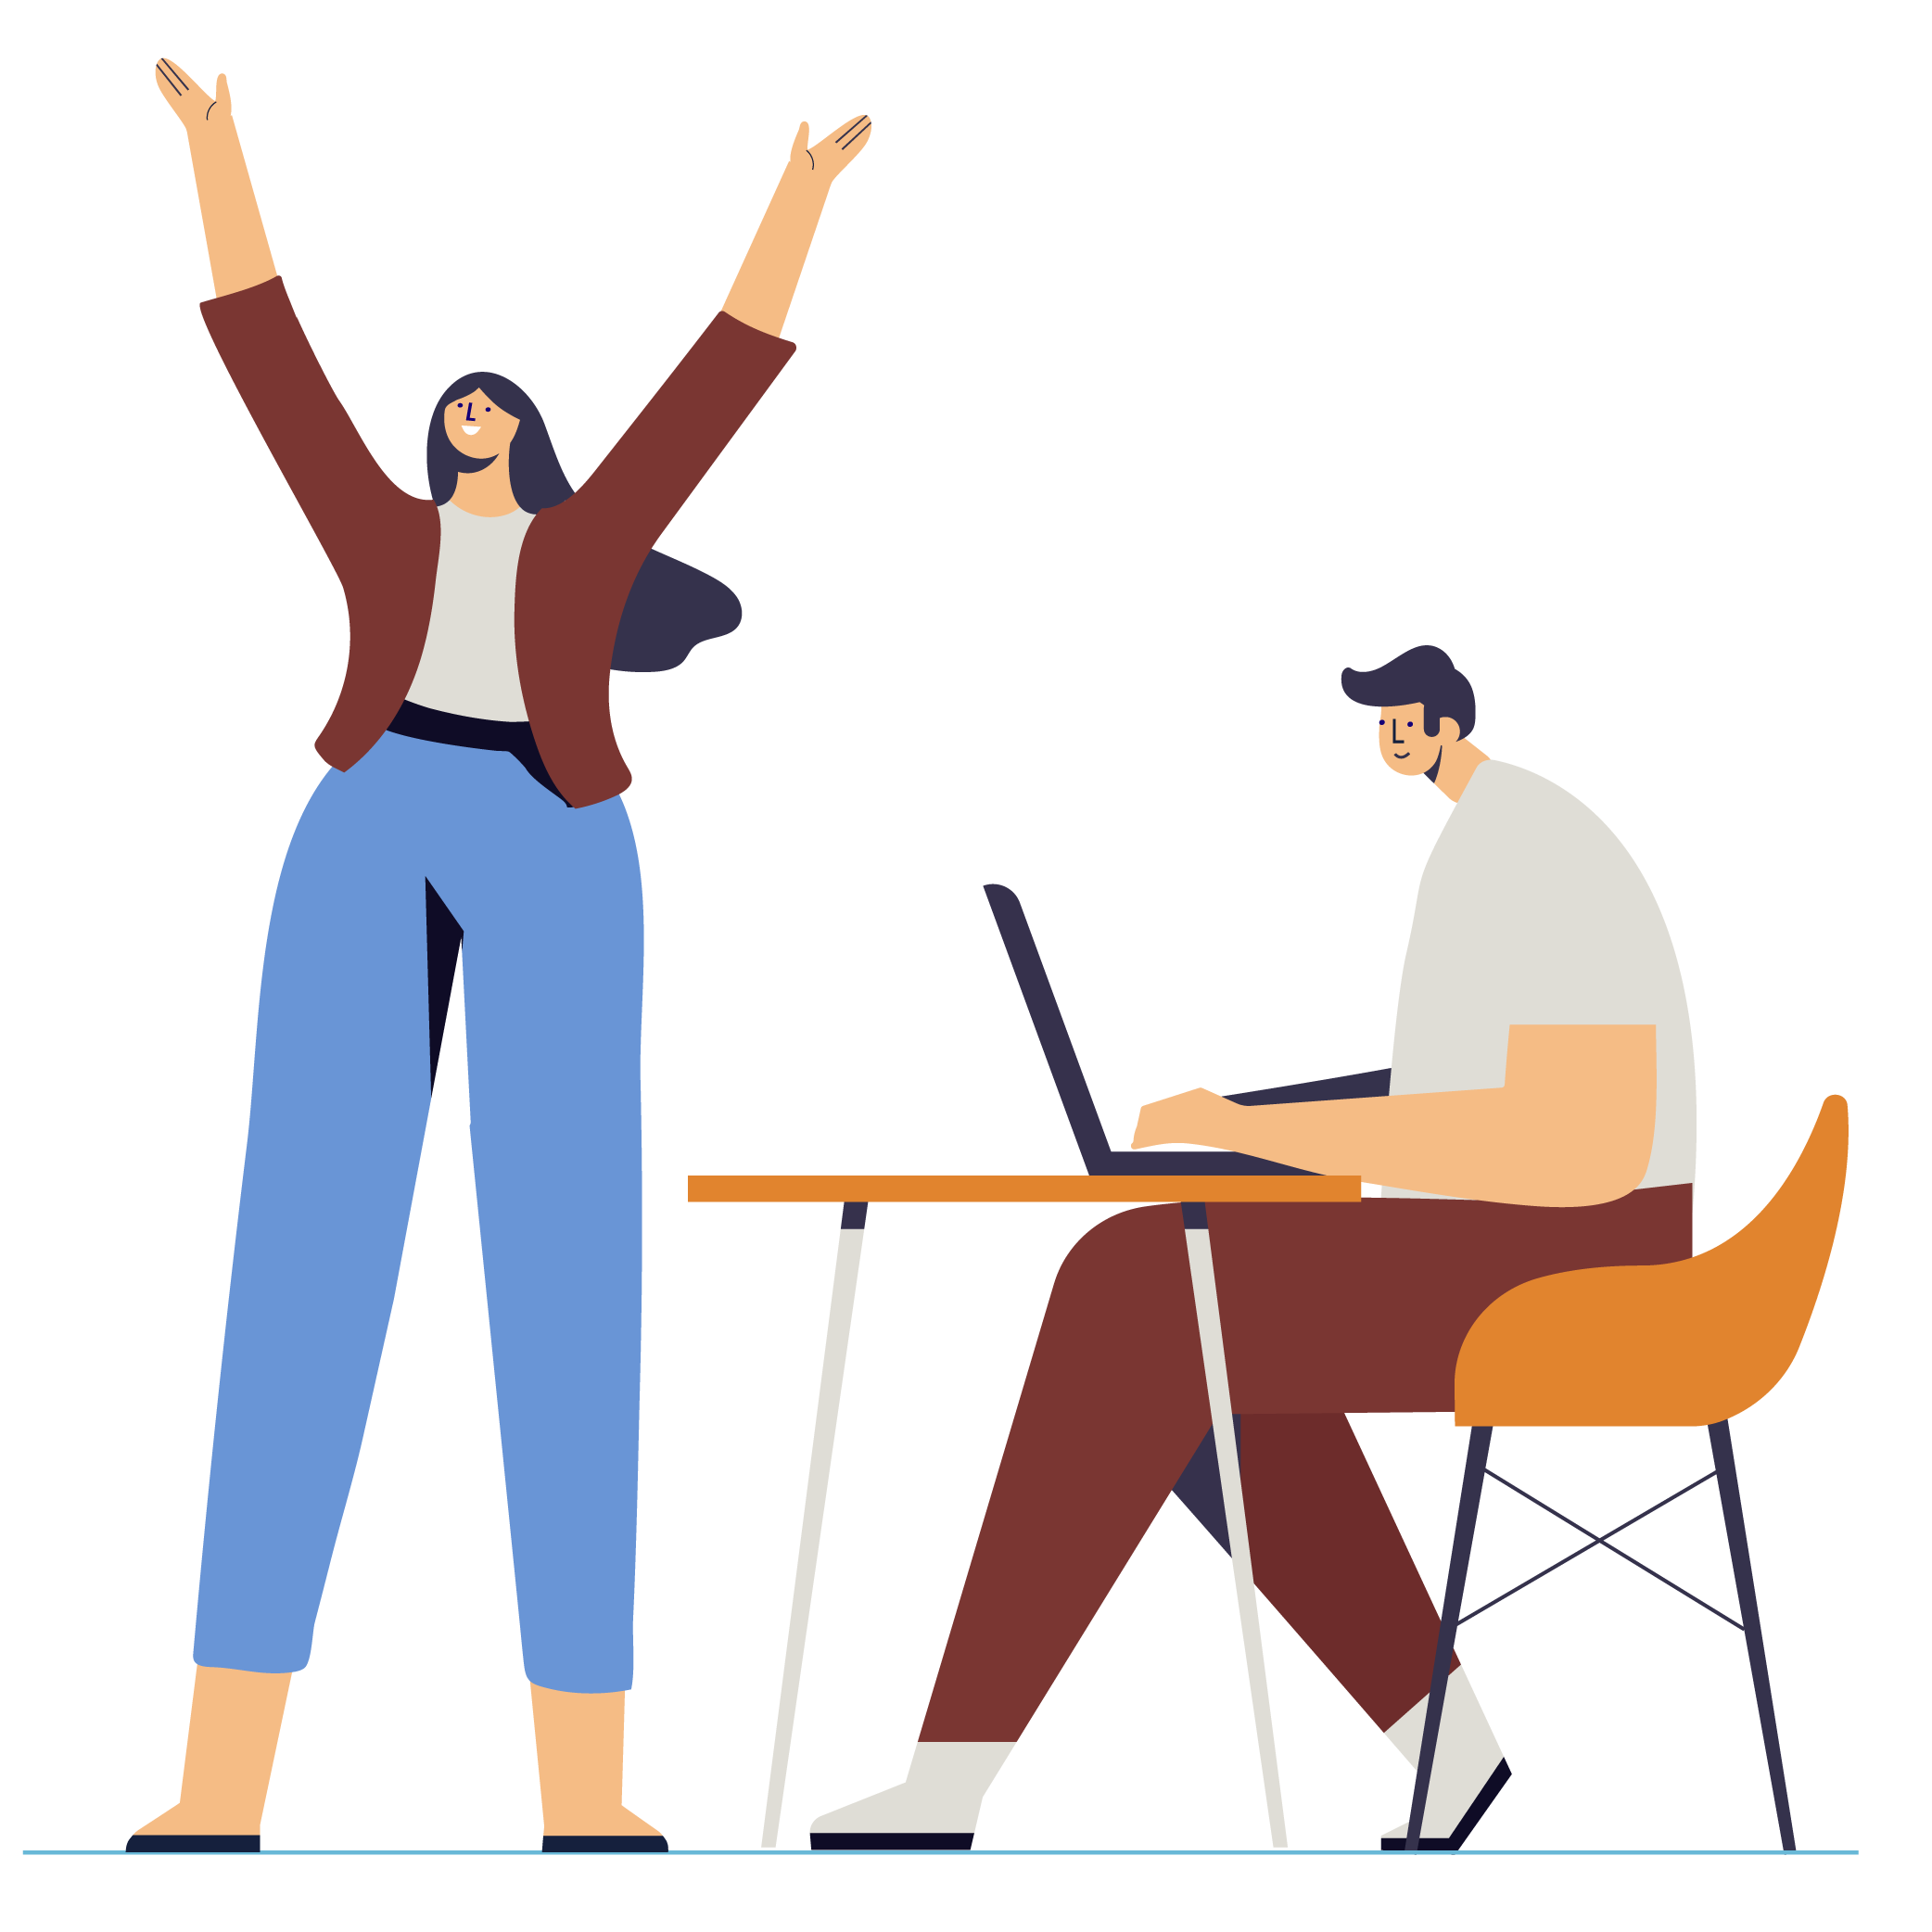 Illustration of woman standing arms up and man sitting with laptop